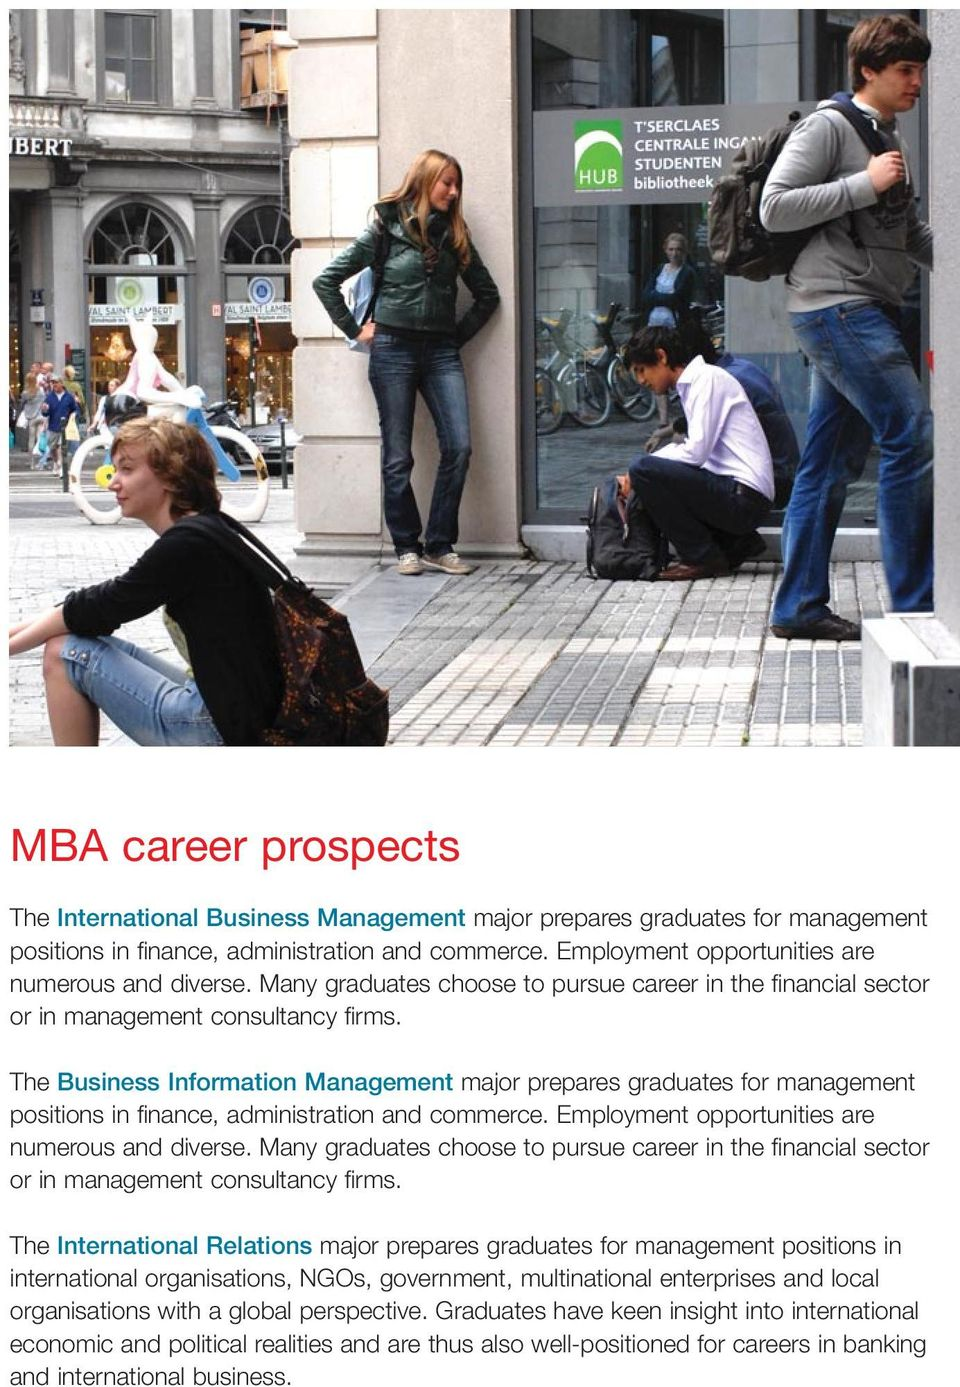 The Business Information Management major prepares graduates for management positions in finance, administration and commerce. Employment opportunities are numerous and diverse.